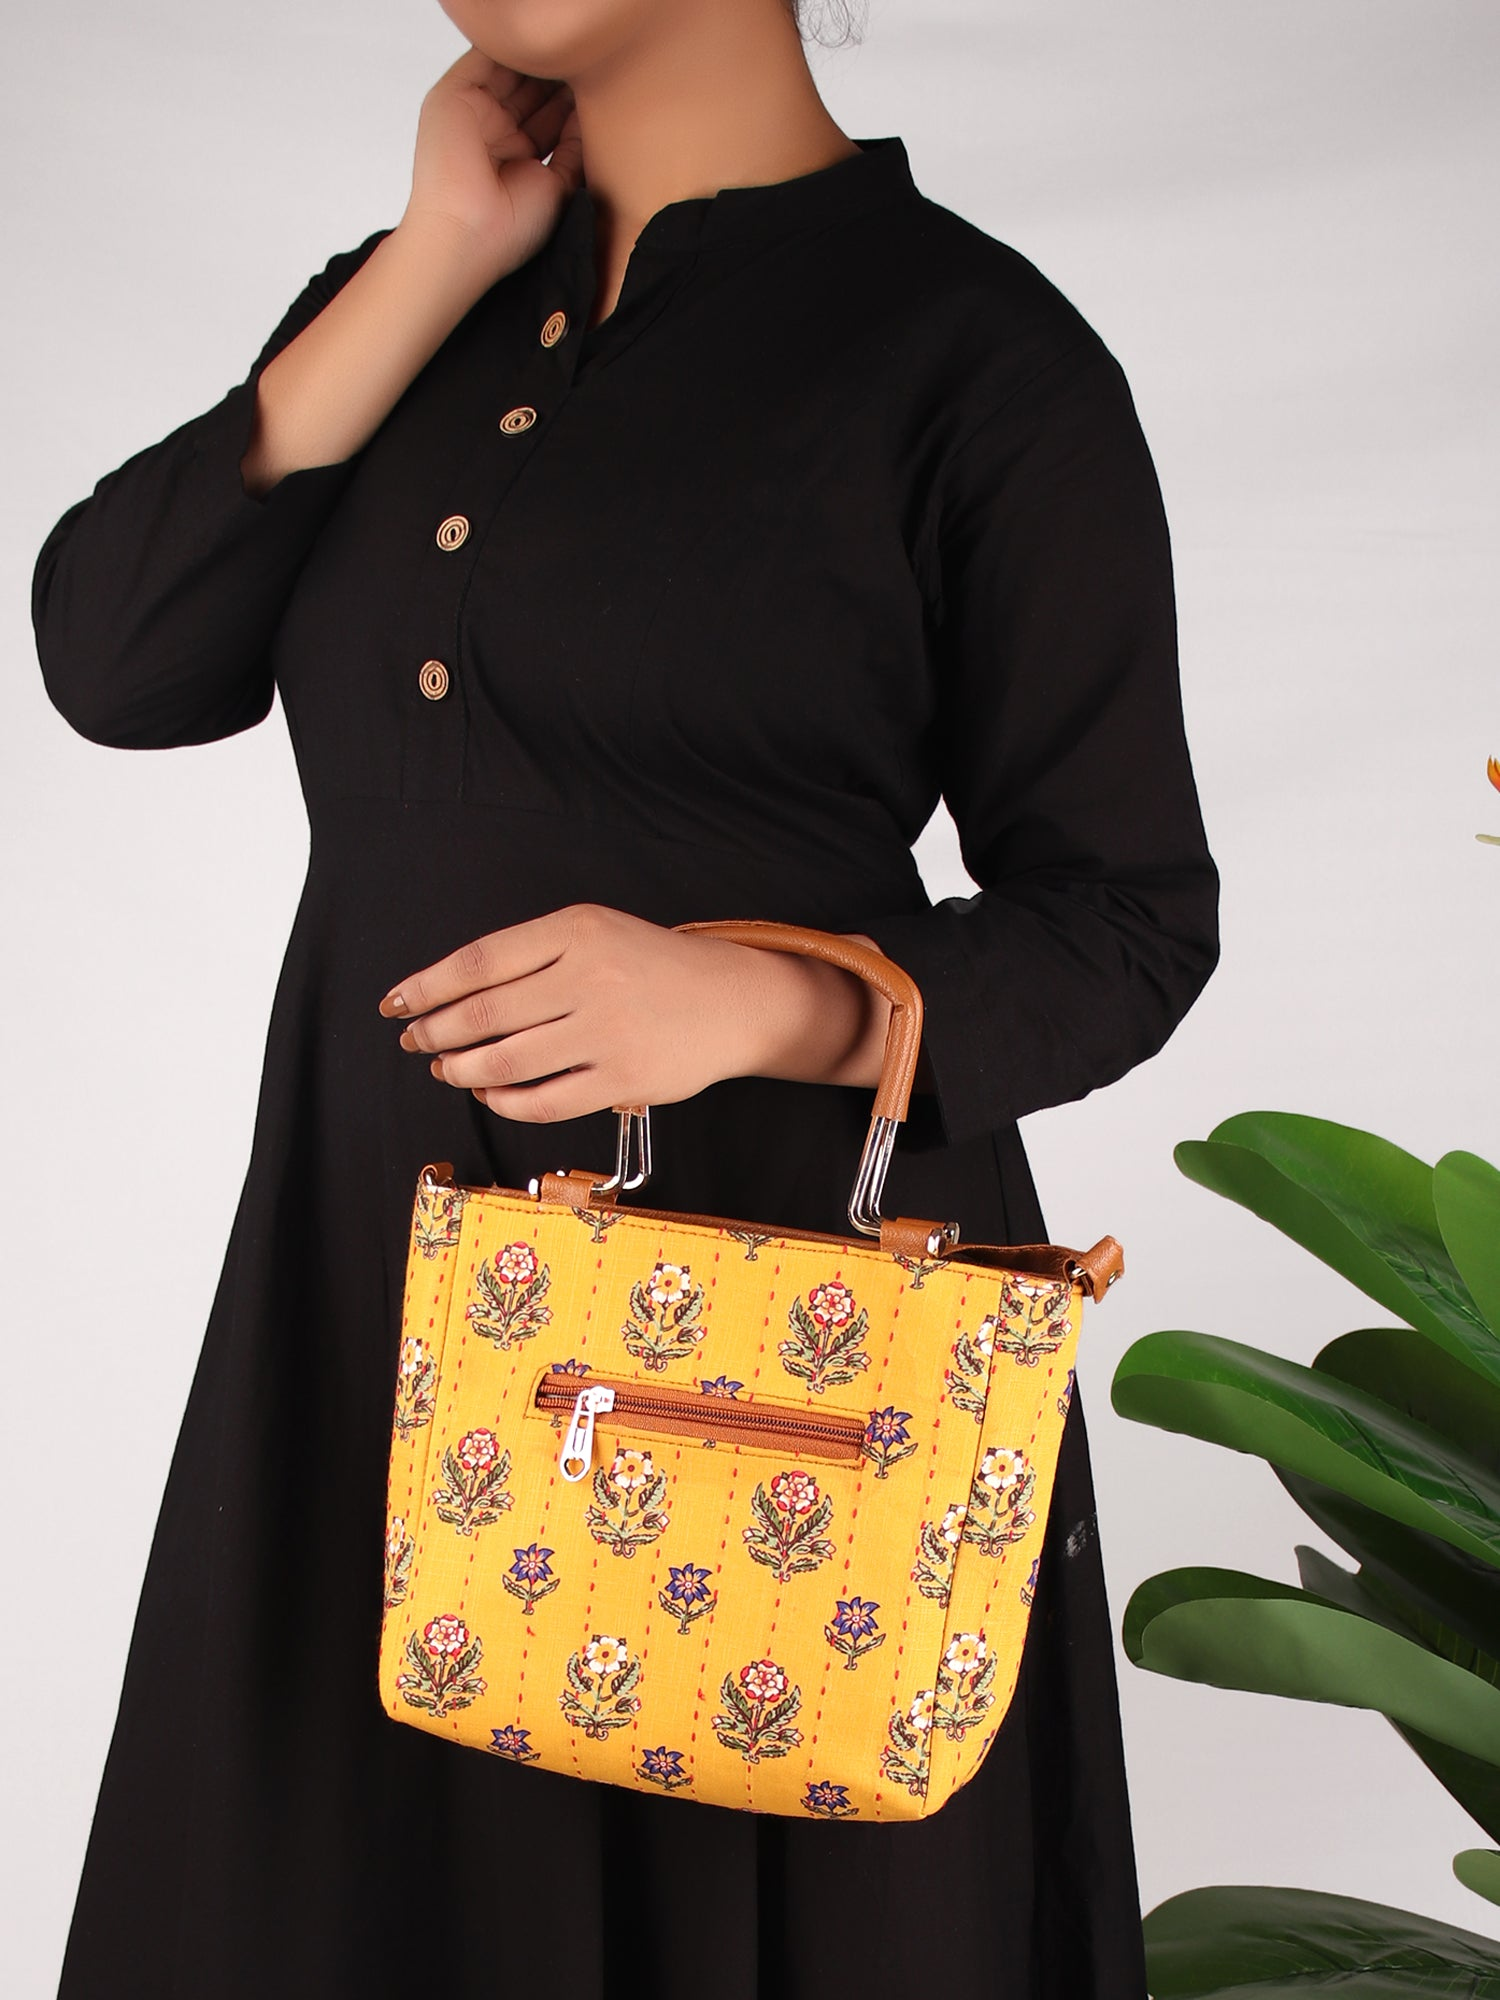 MARIGOLD BLOCK PRINT HANDBAG WITH HANDLE